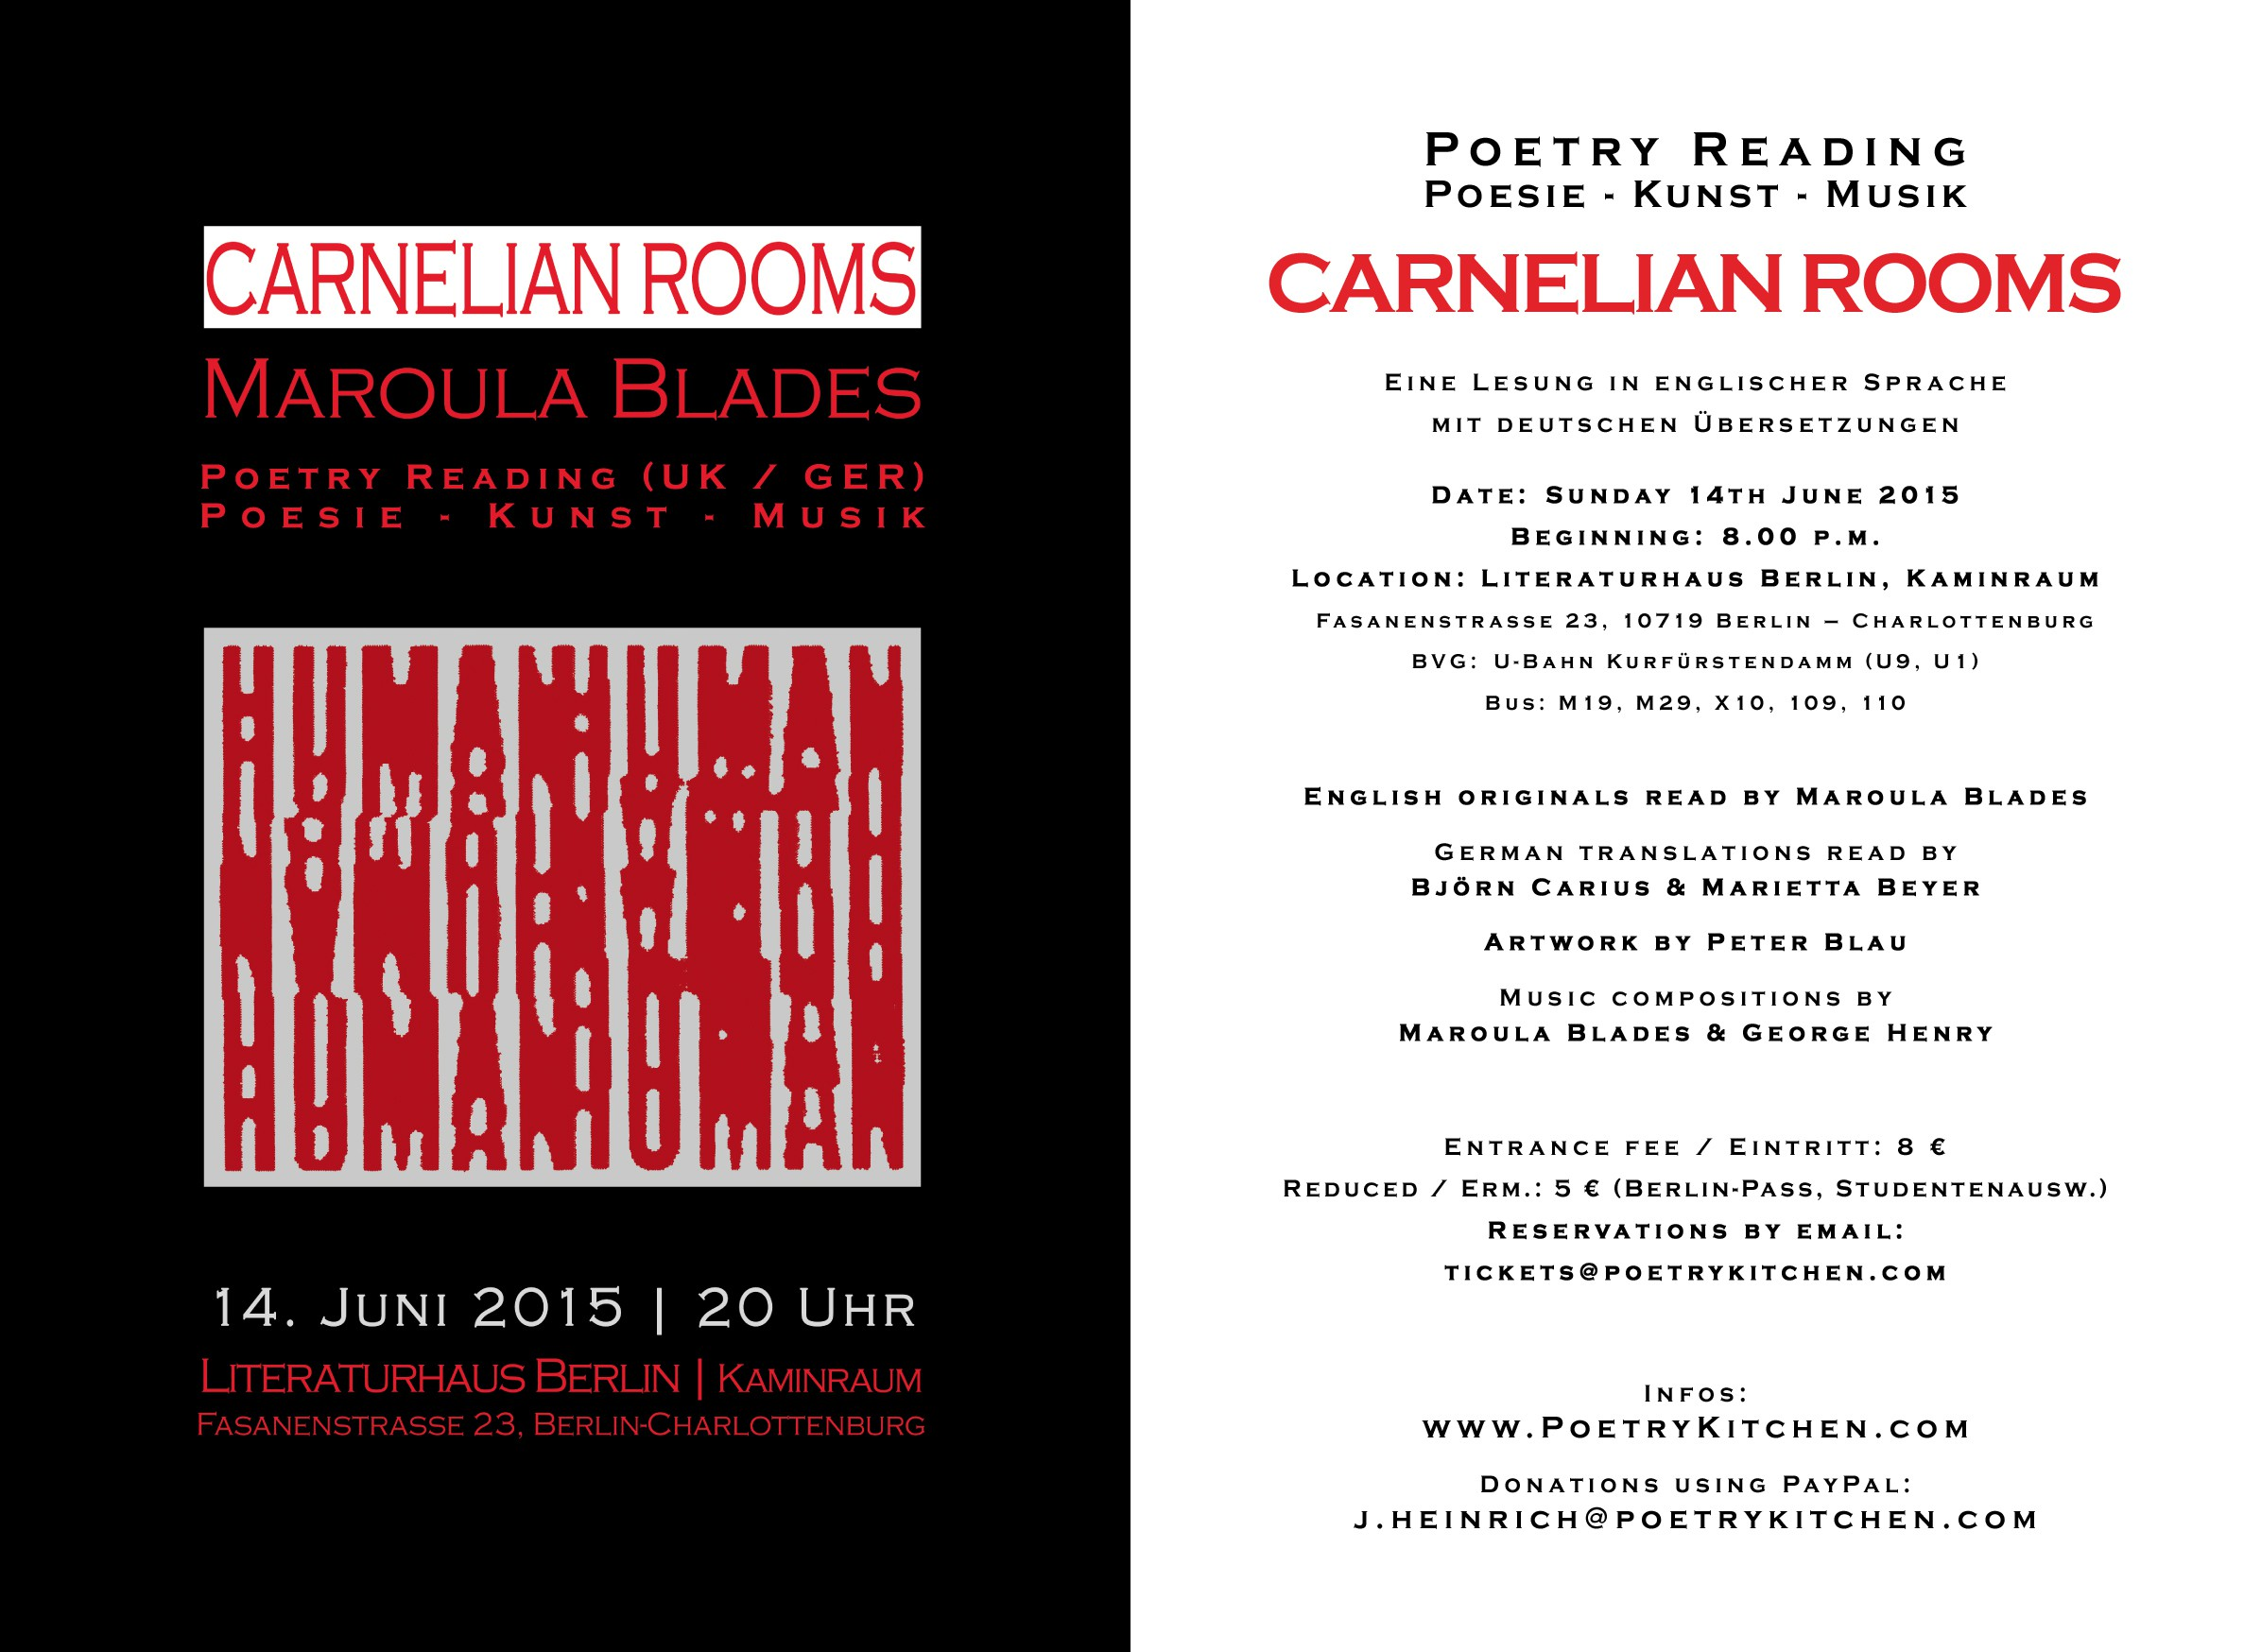 email flyer - Maroula Blades - CARNELIAN ROOMS